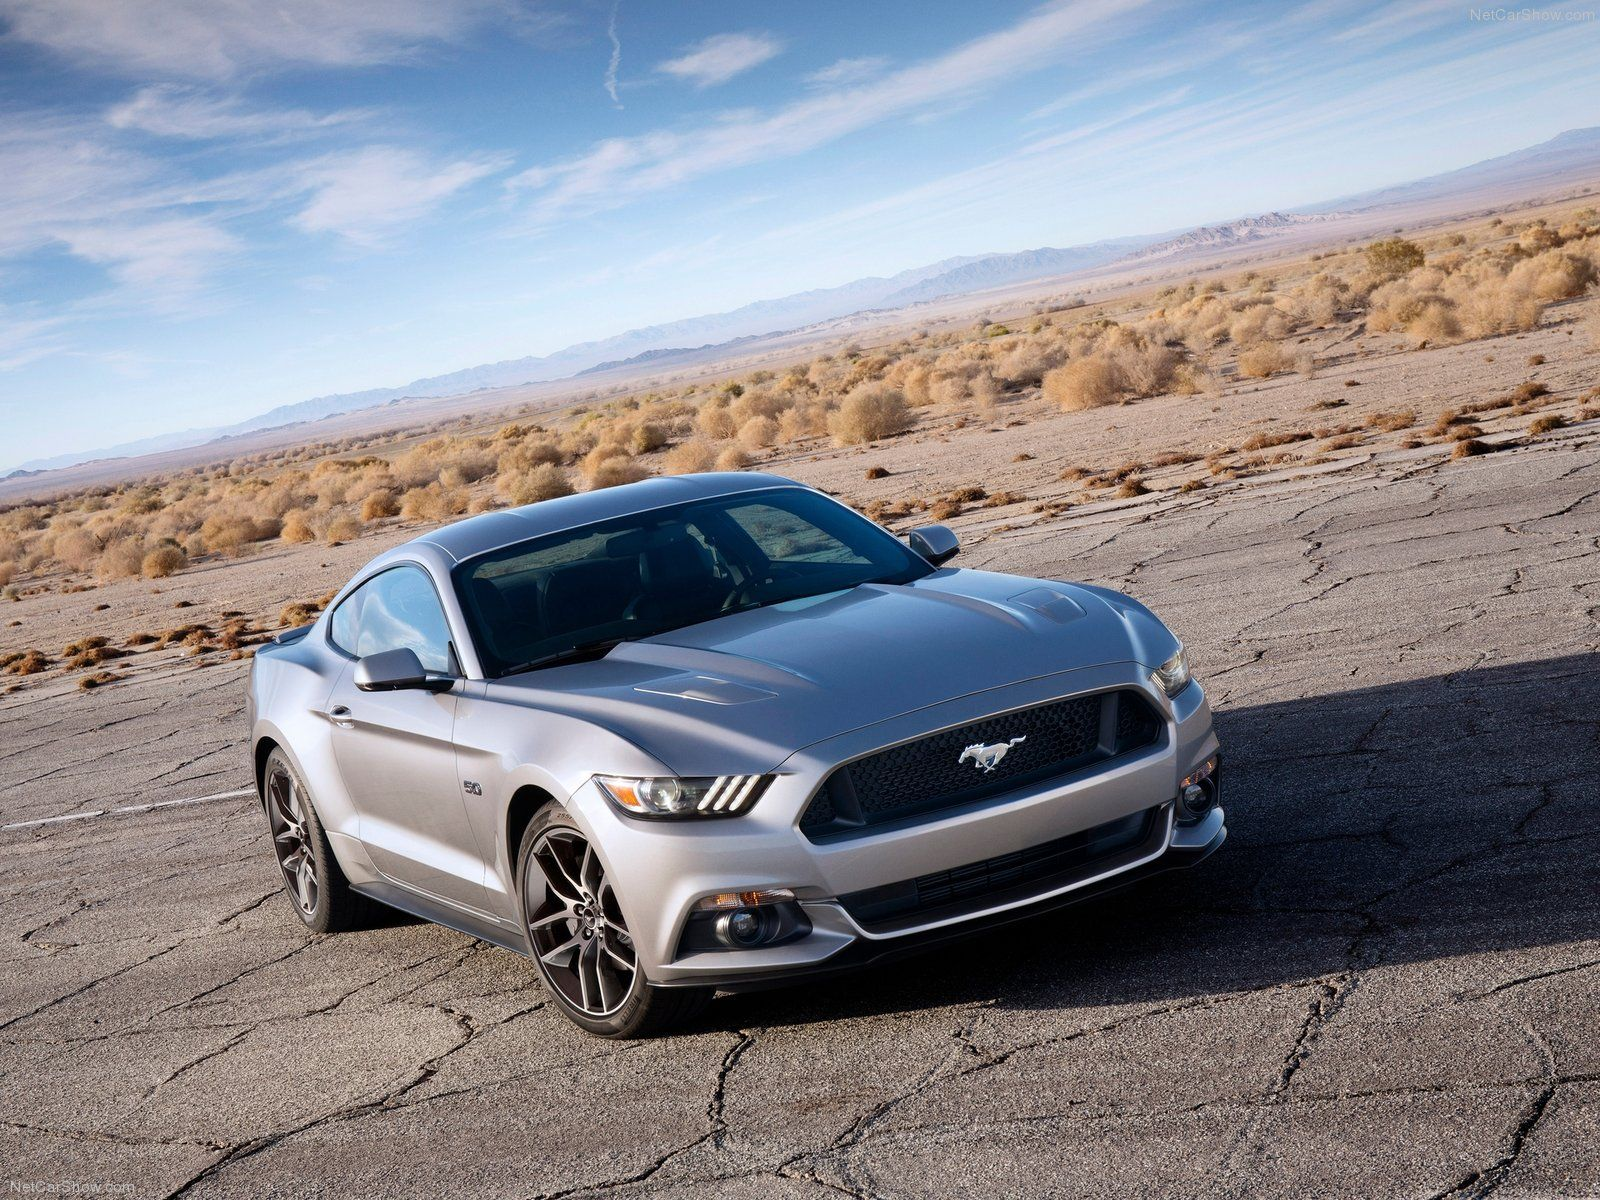 Ford Mustang Wallpaper 3 Sports Cars Wallpapers Ford Mustang Gt 2015 2015 Ford Mustang 2015 Mustang Gt